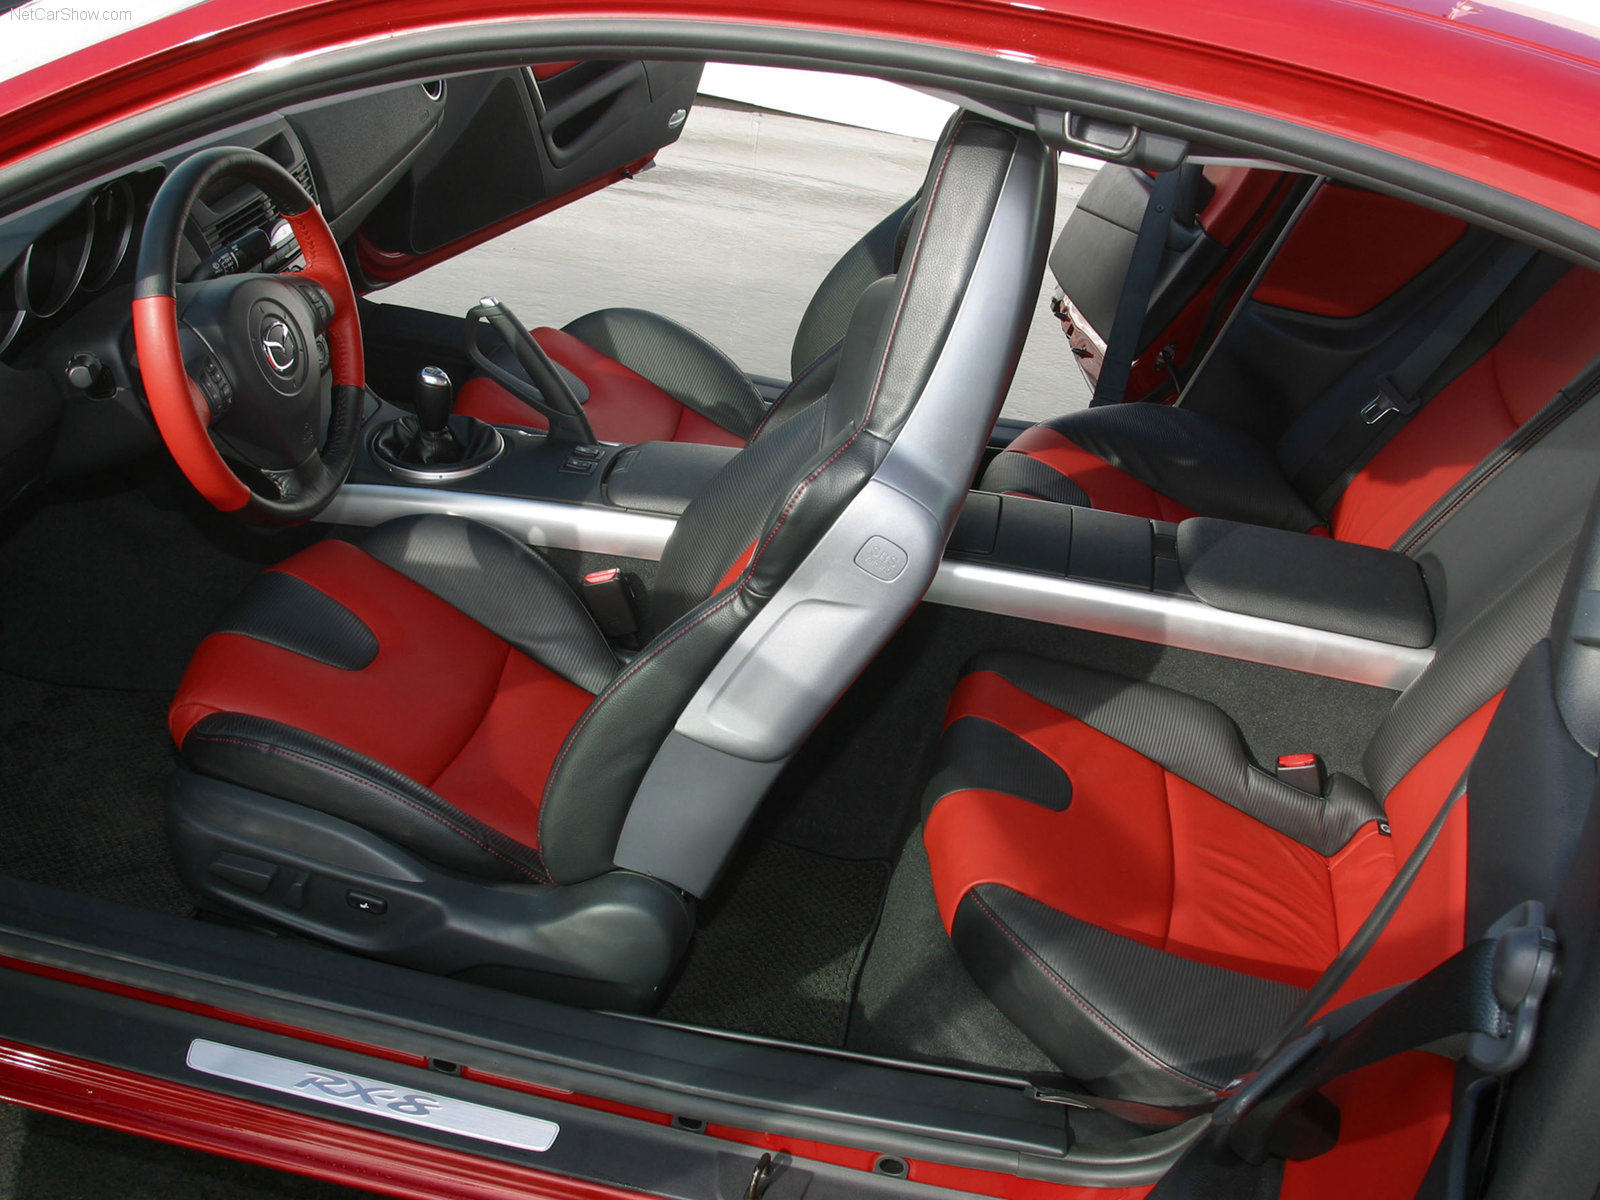 3dtuning Of Mazda Rx 8 Roadster 2004 Unique On Line Car Configurator For More